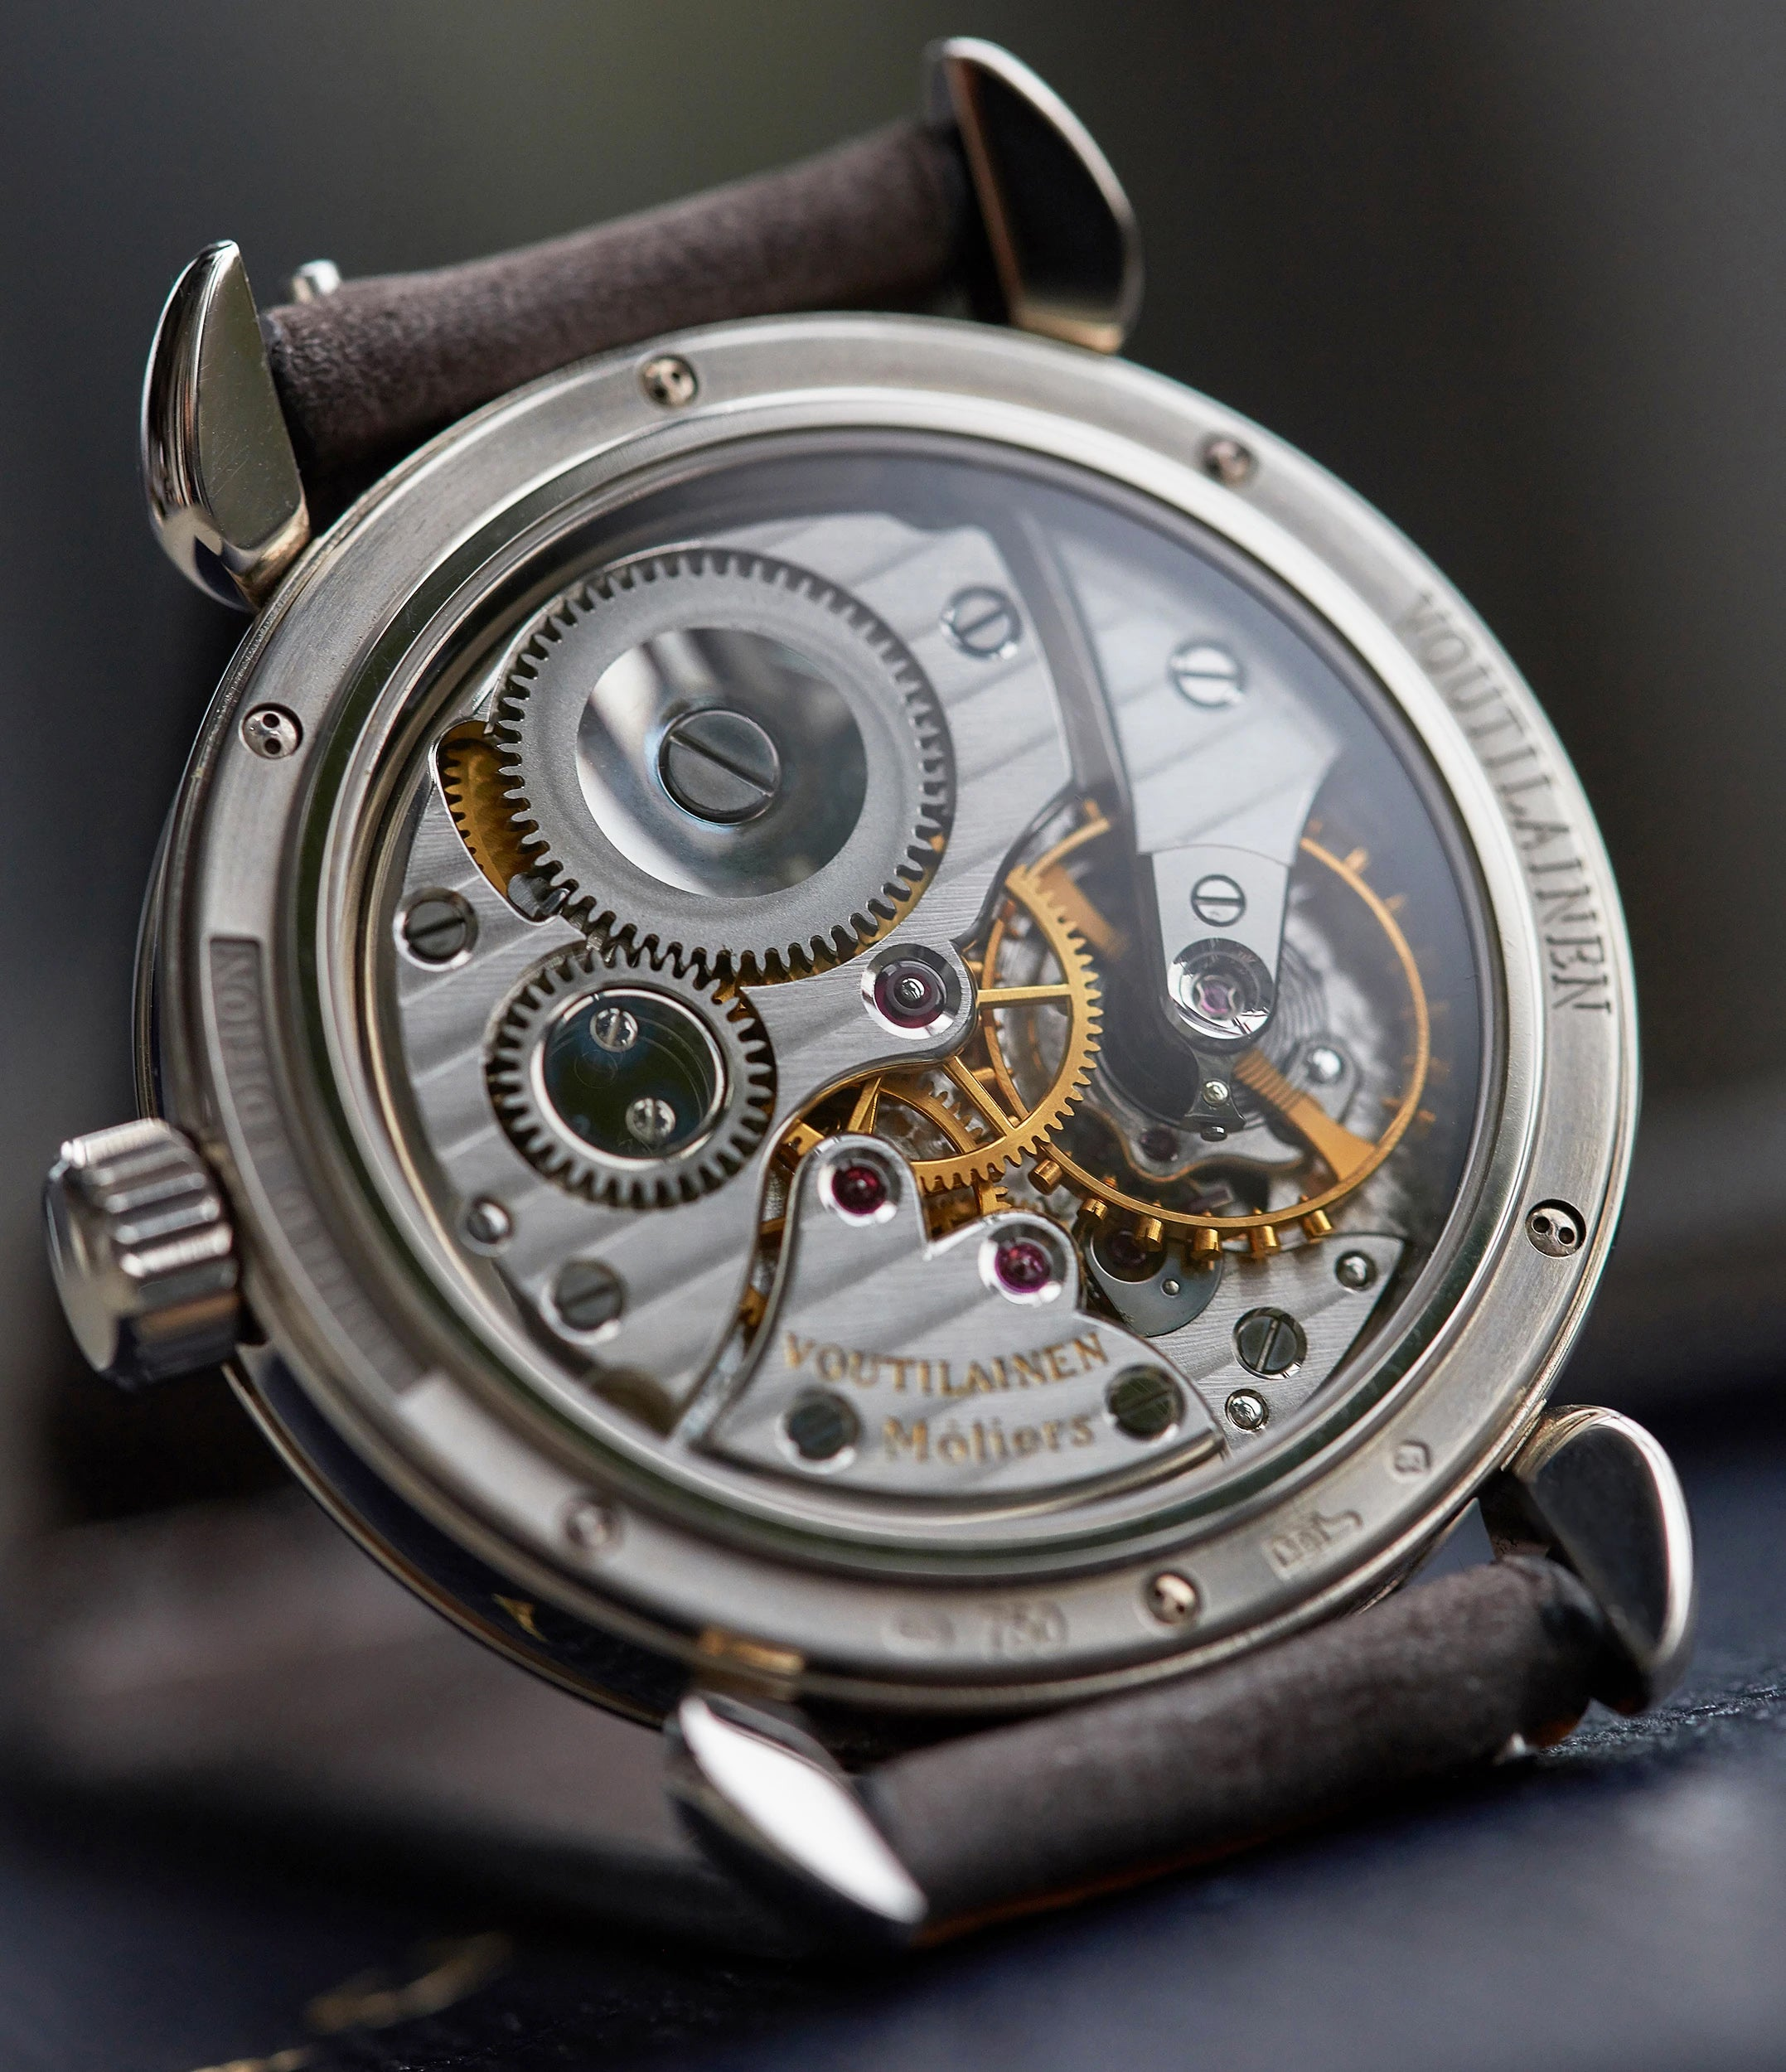 Voutilainen Observatoire watch movement In The Origins of the AHCI for A Collected Man London